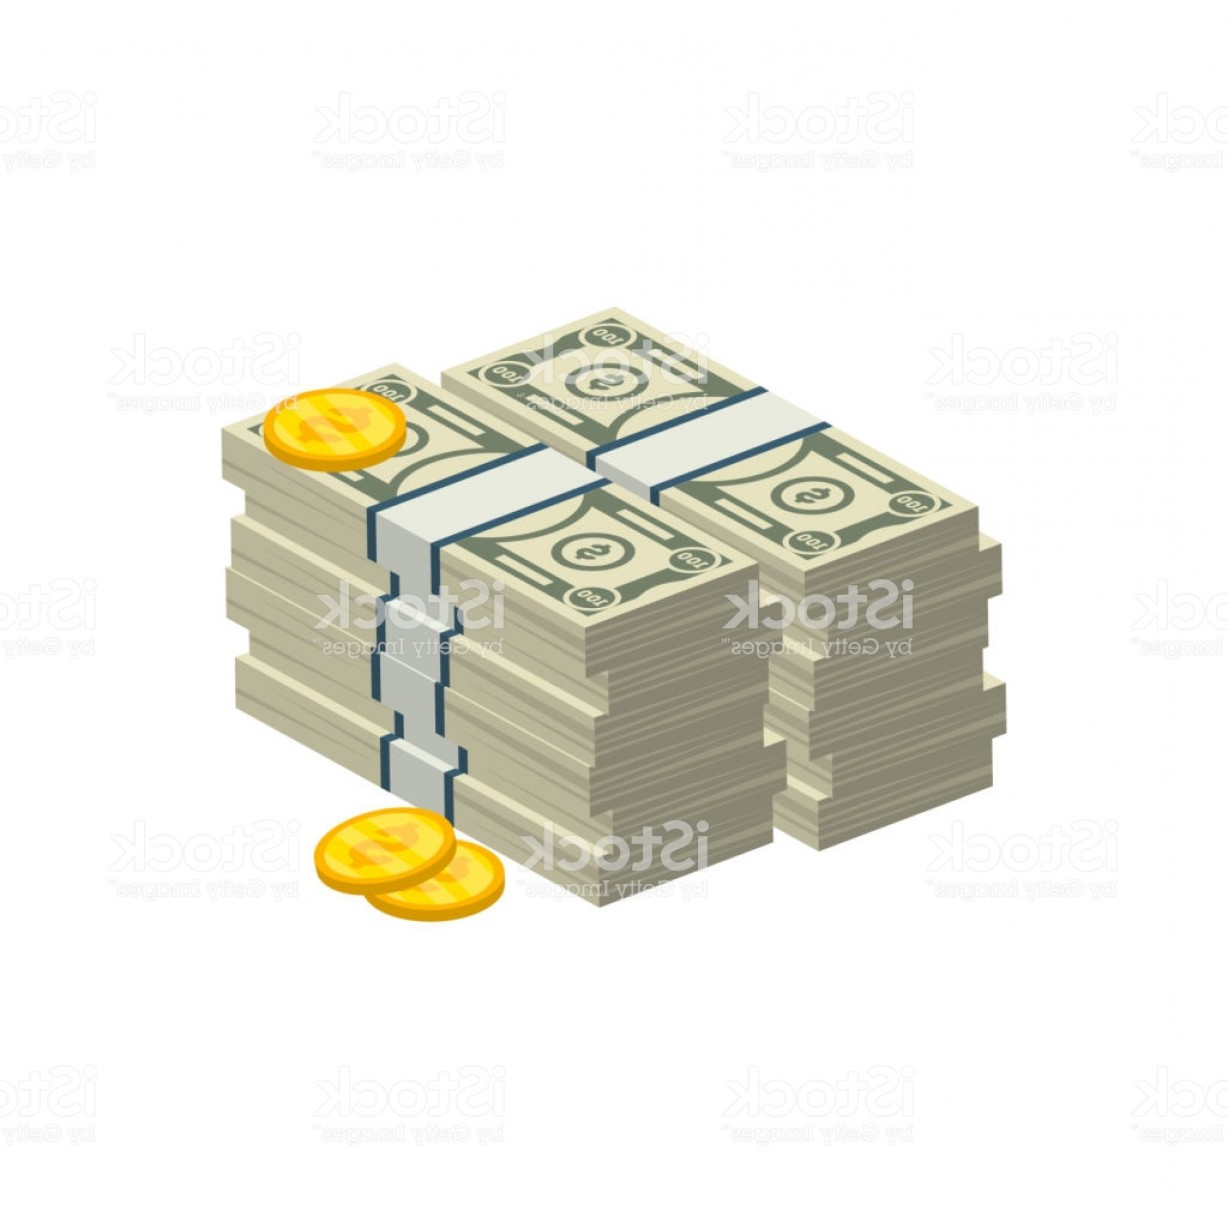 Hundreds Of Money Stacks Vector: Isometric Money Stack Isolated Icon Gm